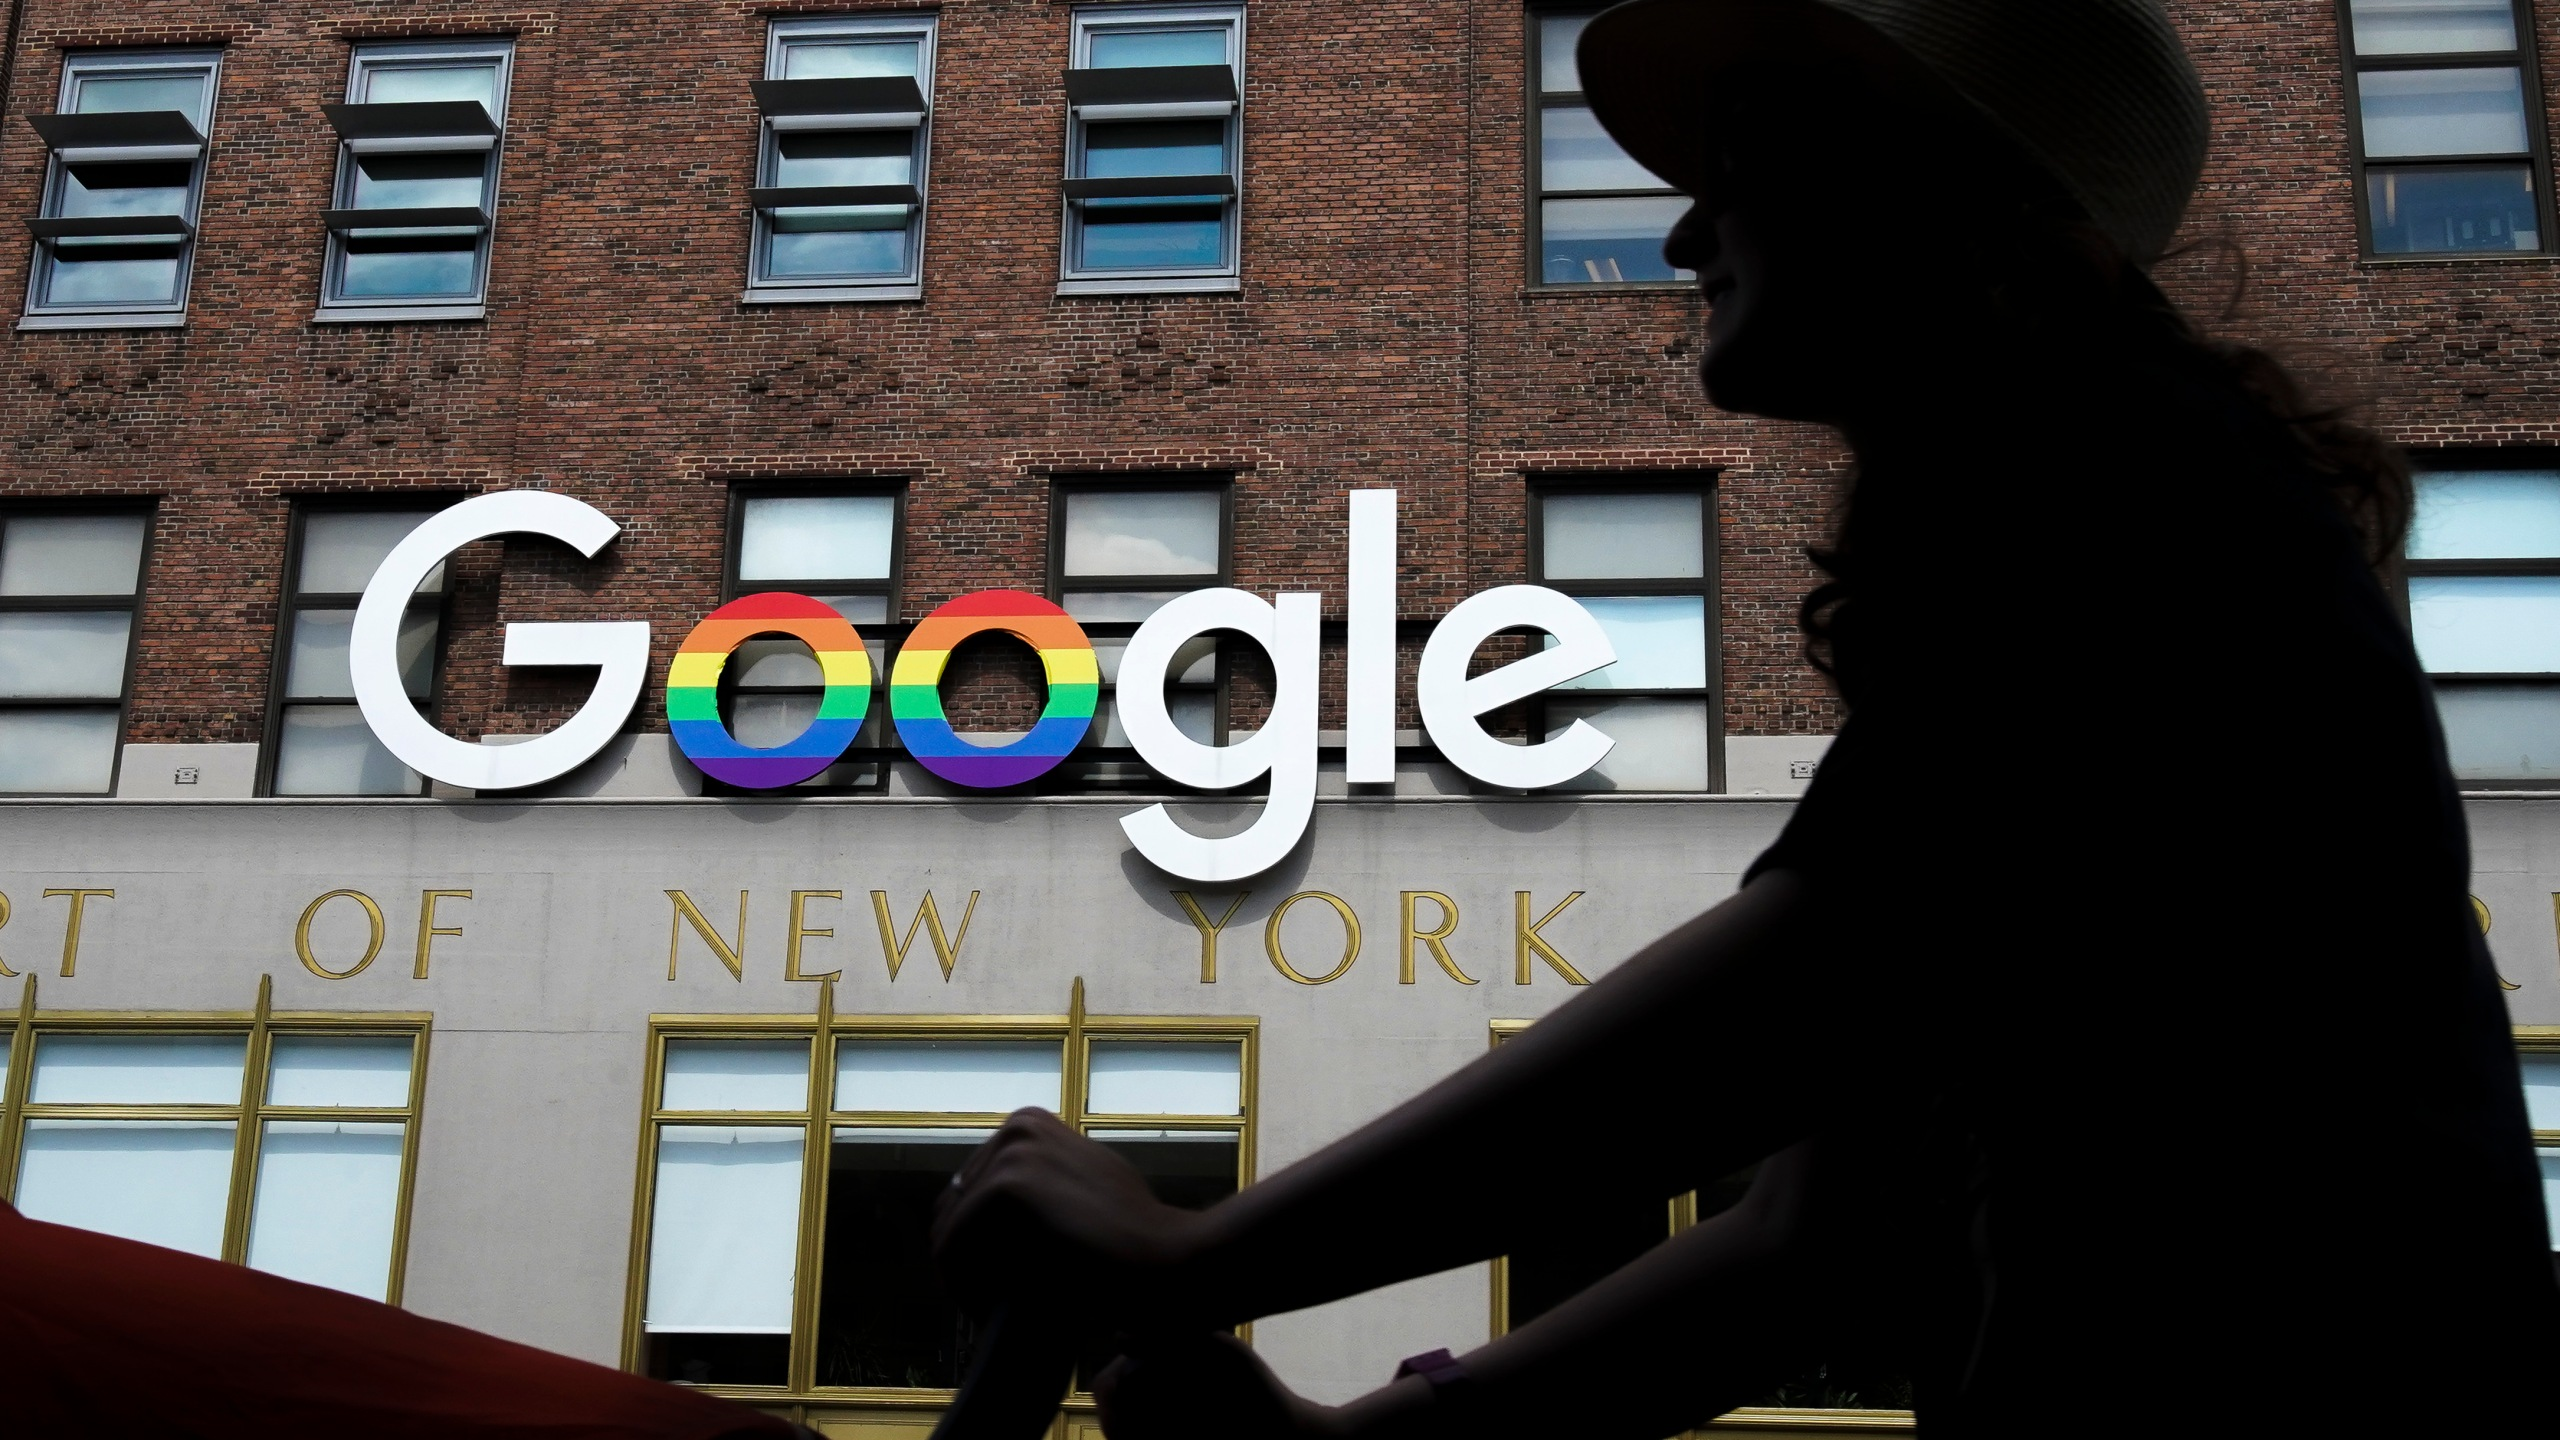 The Google logo adorns one of the company's office buildings in New York City on June 3, 2019. (Credit: Drew Angerer / Getty Images)